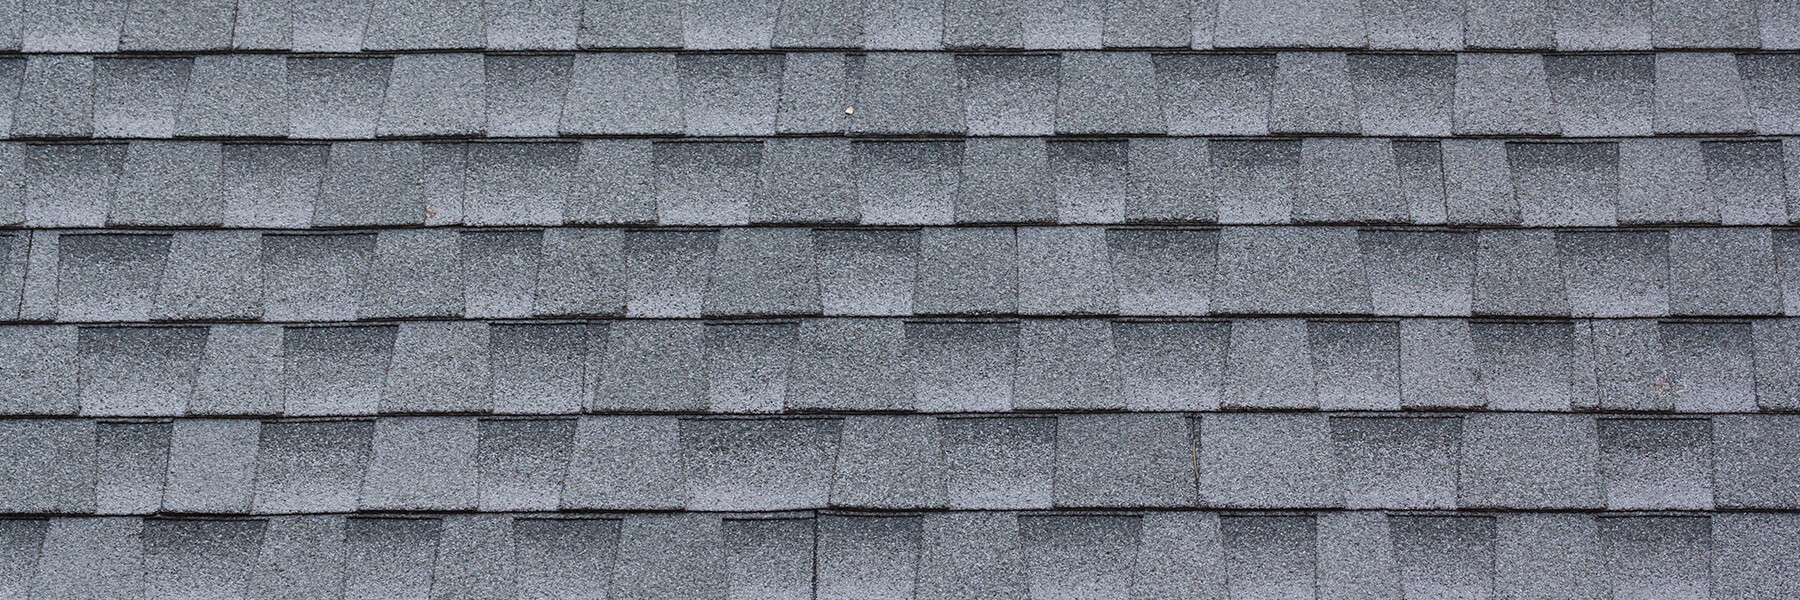 The Good, the Bad, and the Ugly: Florida's Range of Roofing Materials